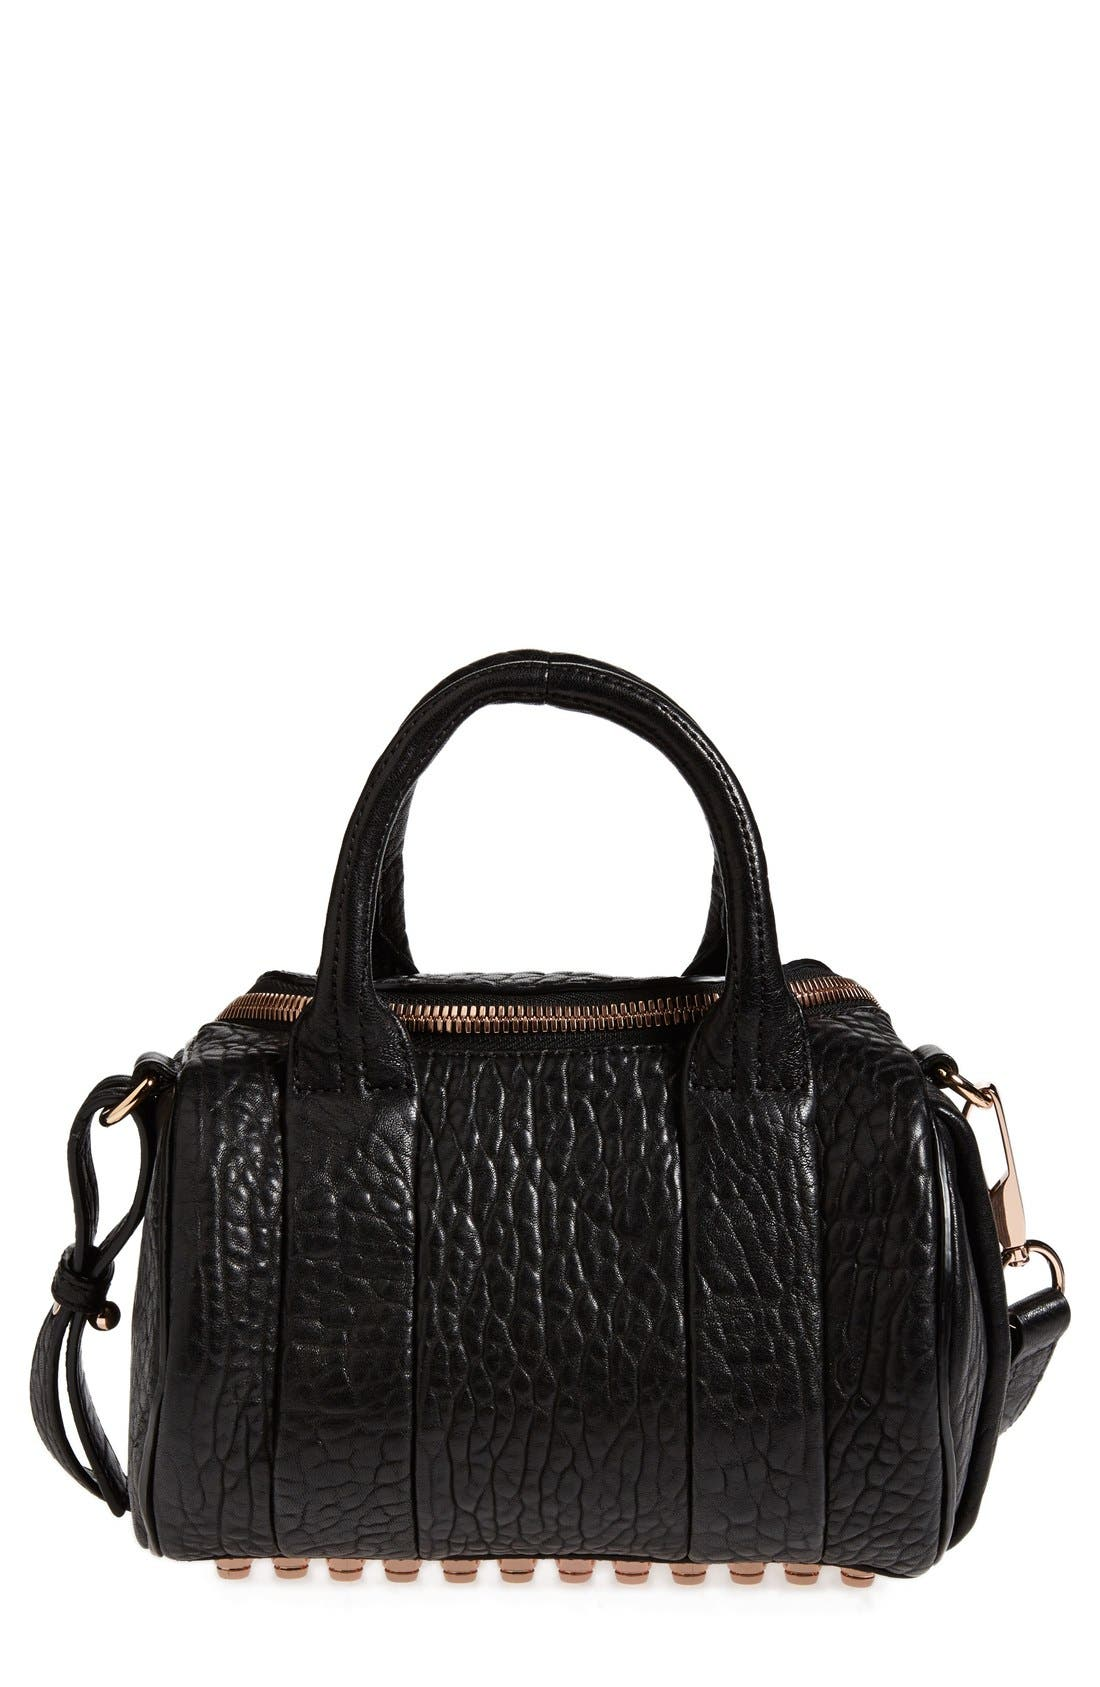 ALEXANDER WANG Mini Rockie - Rose Gold Leather Crossbody Satchel